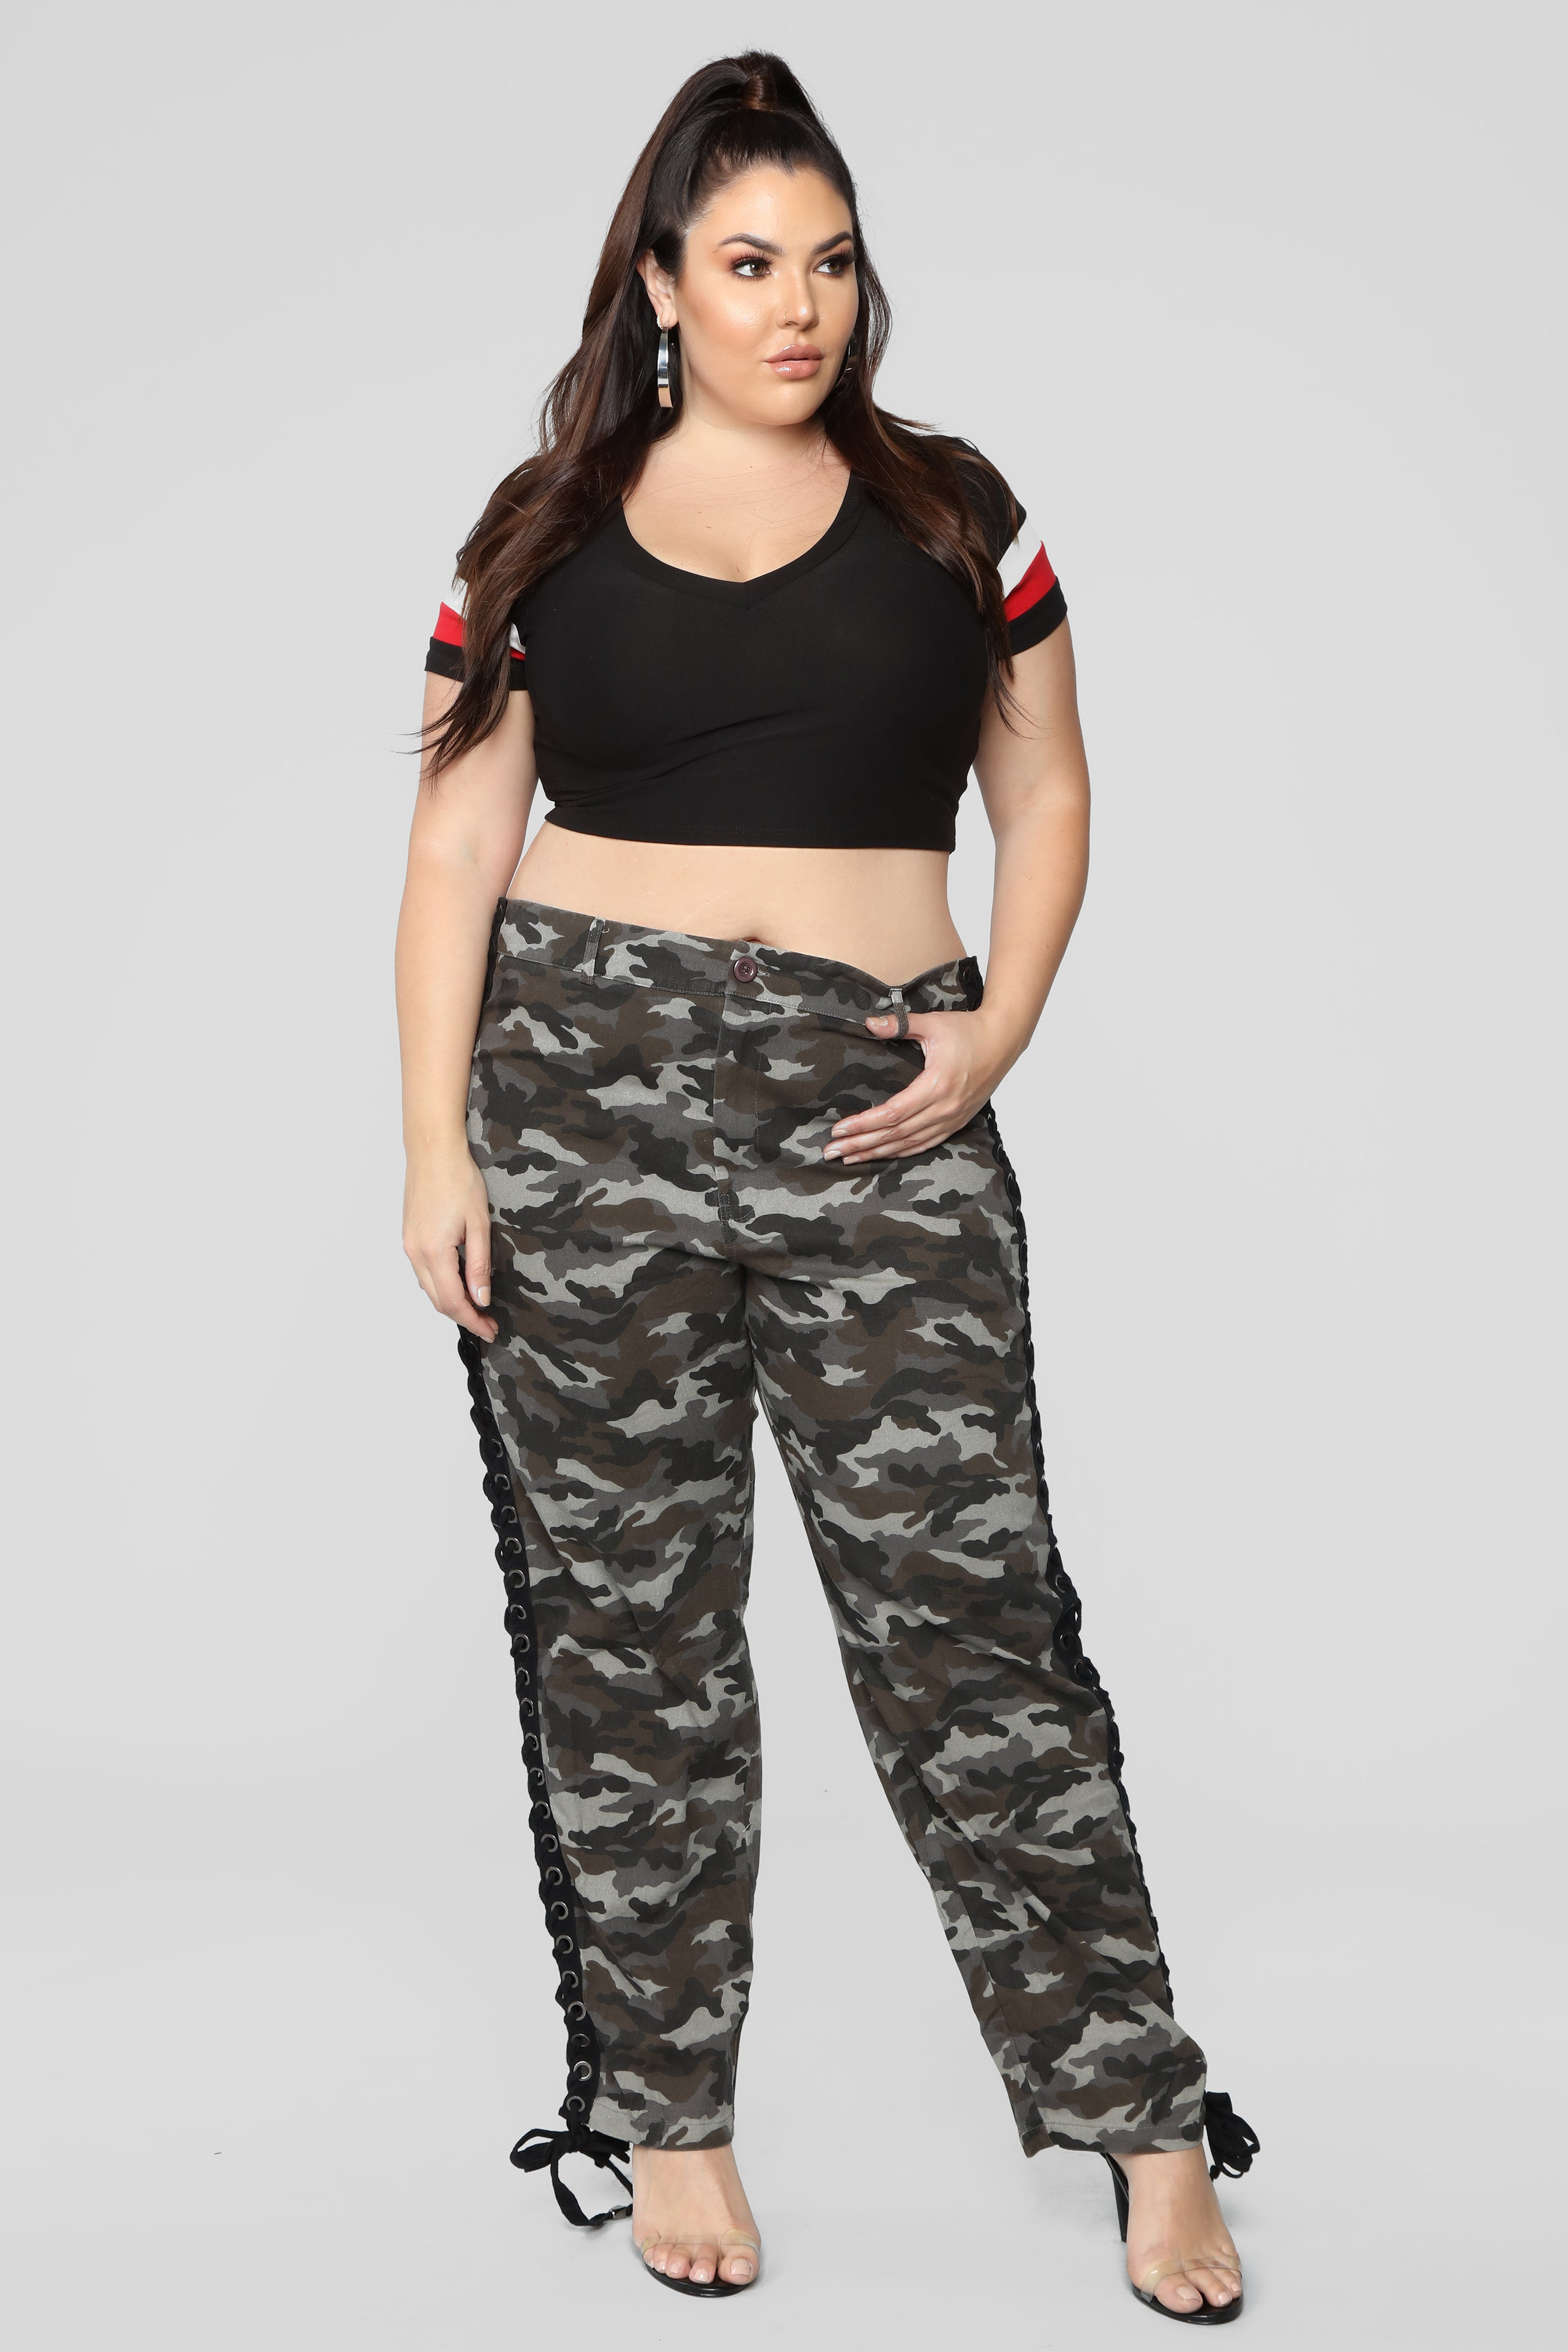 b36a27c8fc1 Lace Up The Camo Cargo Pants - Grey